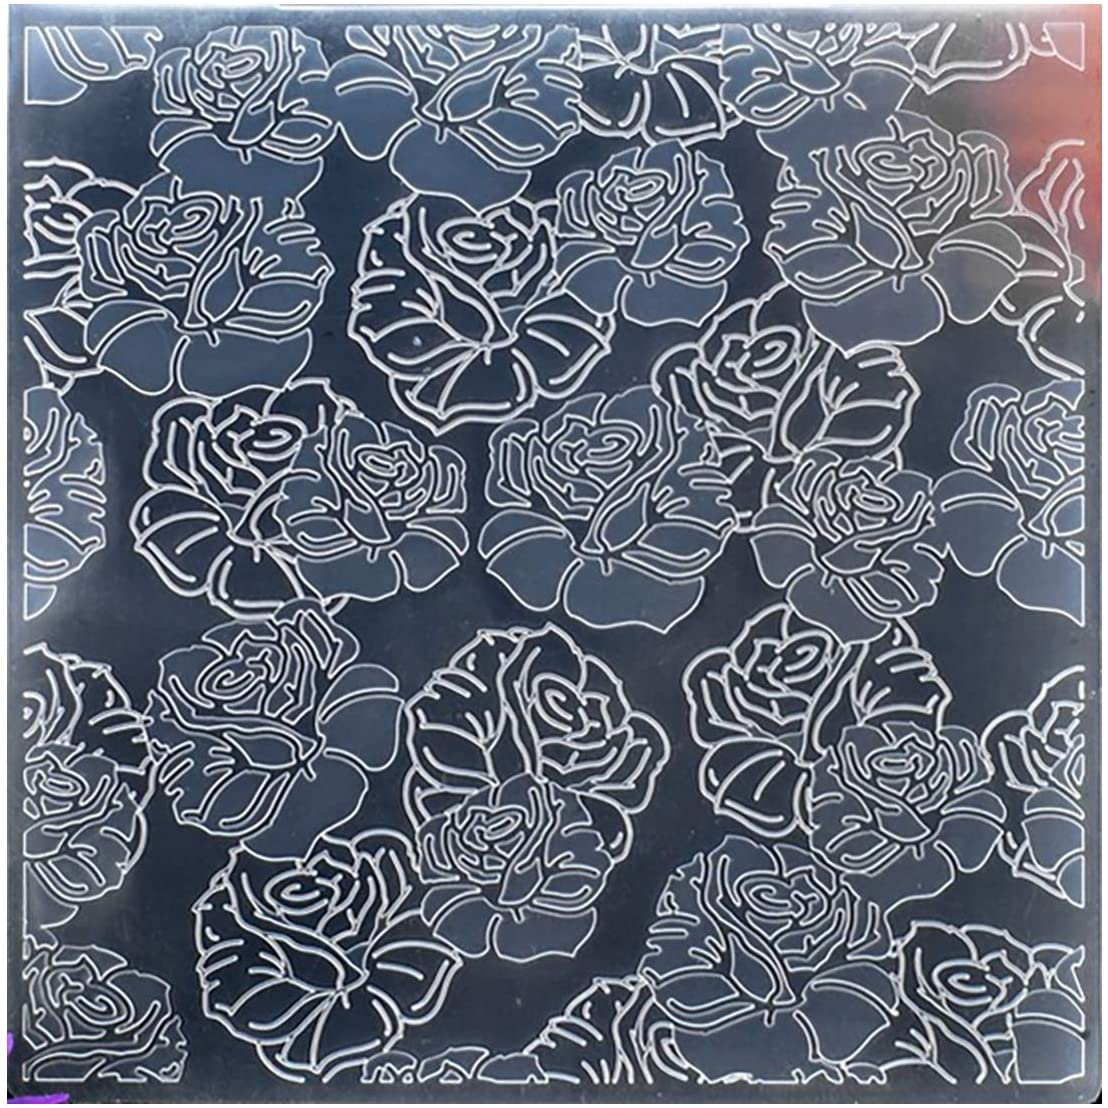 Kwan Crafts Flowers Plastic Embossing Folders for Card Making Scrapbooking and Other Paper Crafts, 15x15cm